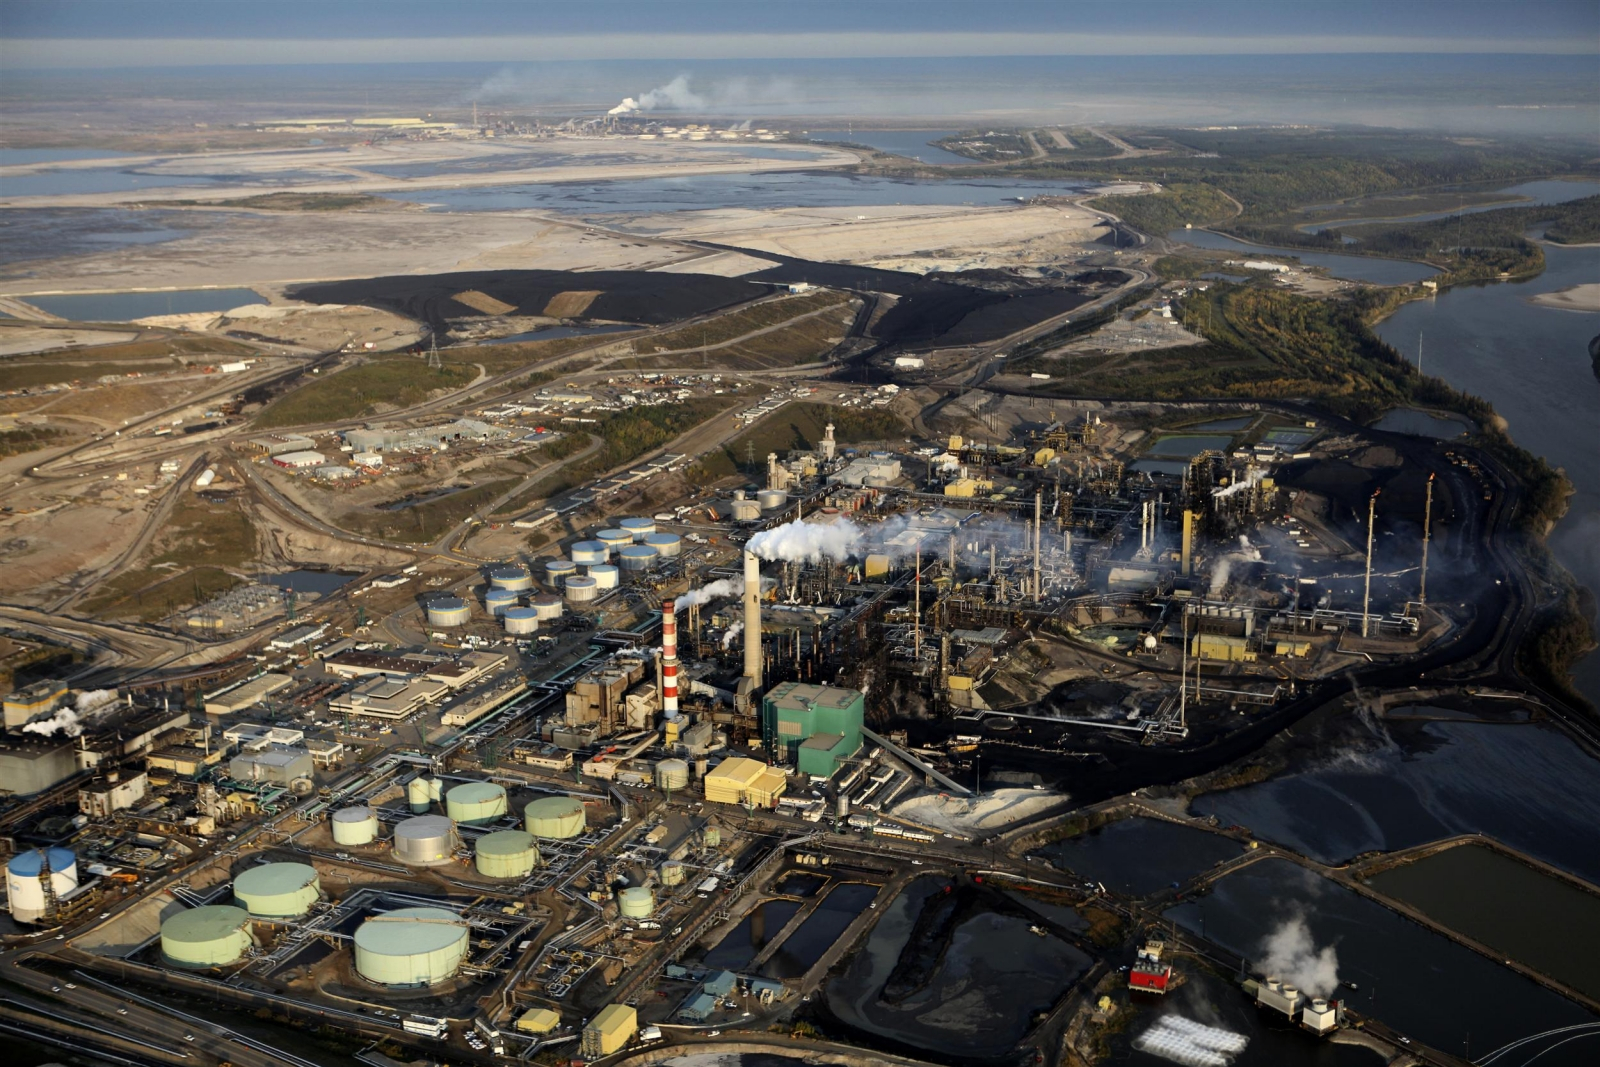 Suncor Refinery outside of Fort McMurray with the Syncrude Refinery visible in the background. Photo by Colin O'Connor, Greenpeace.